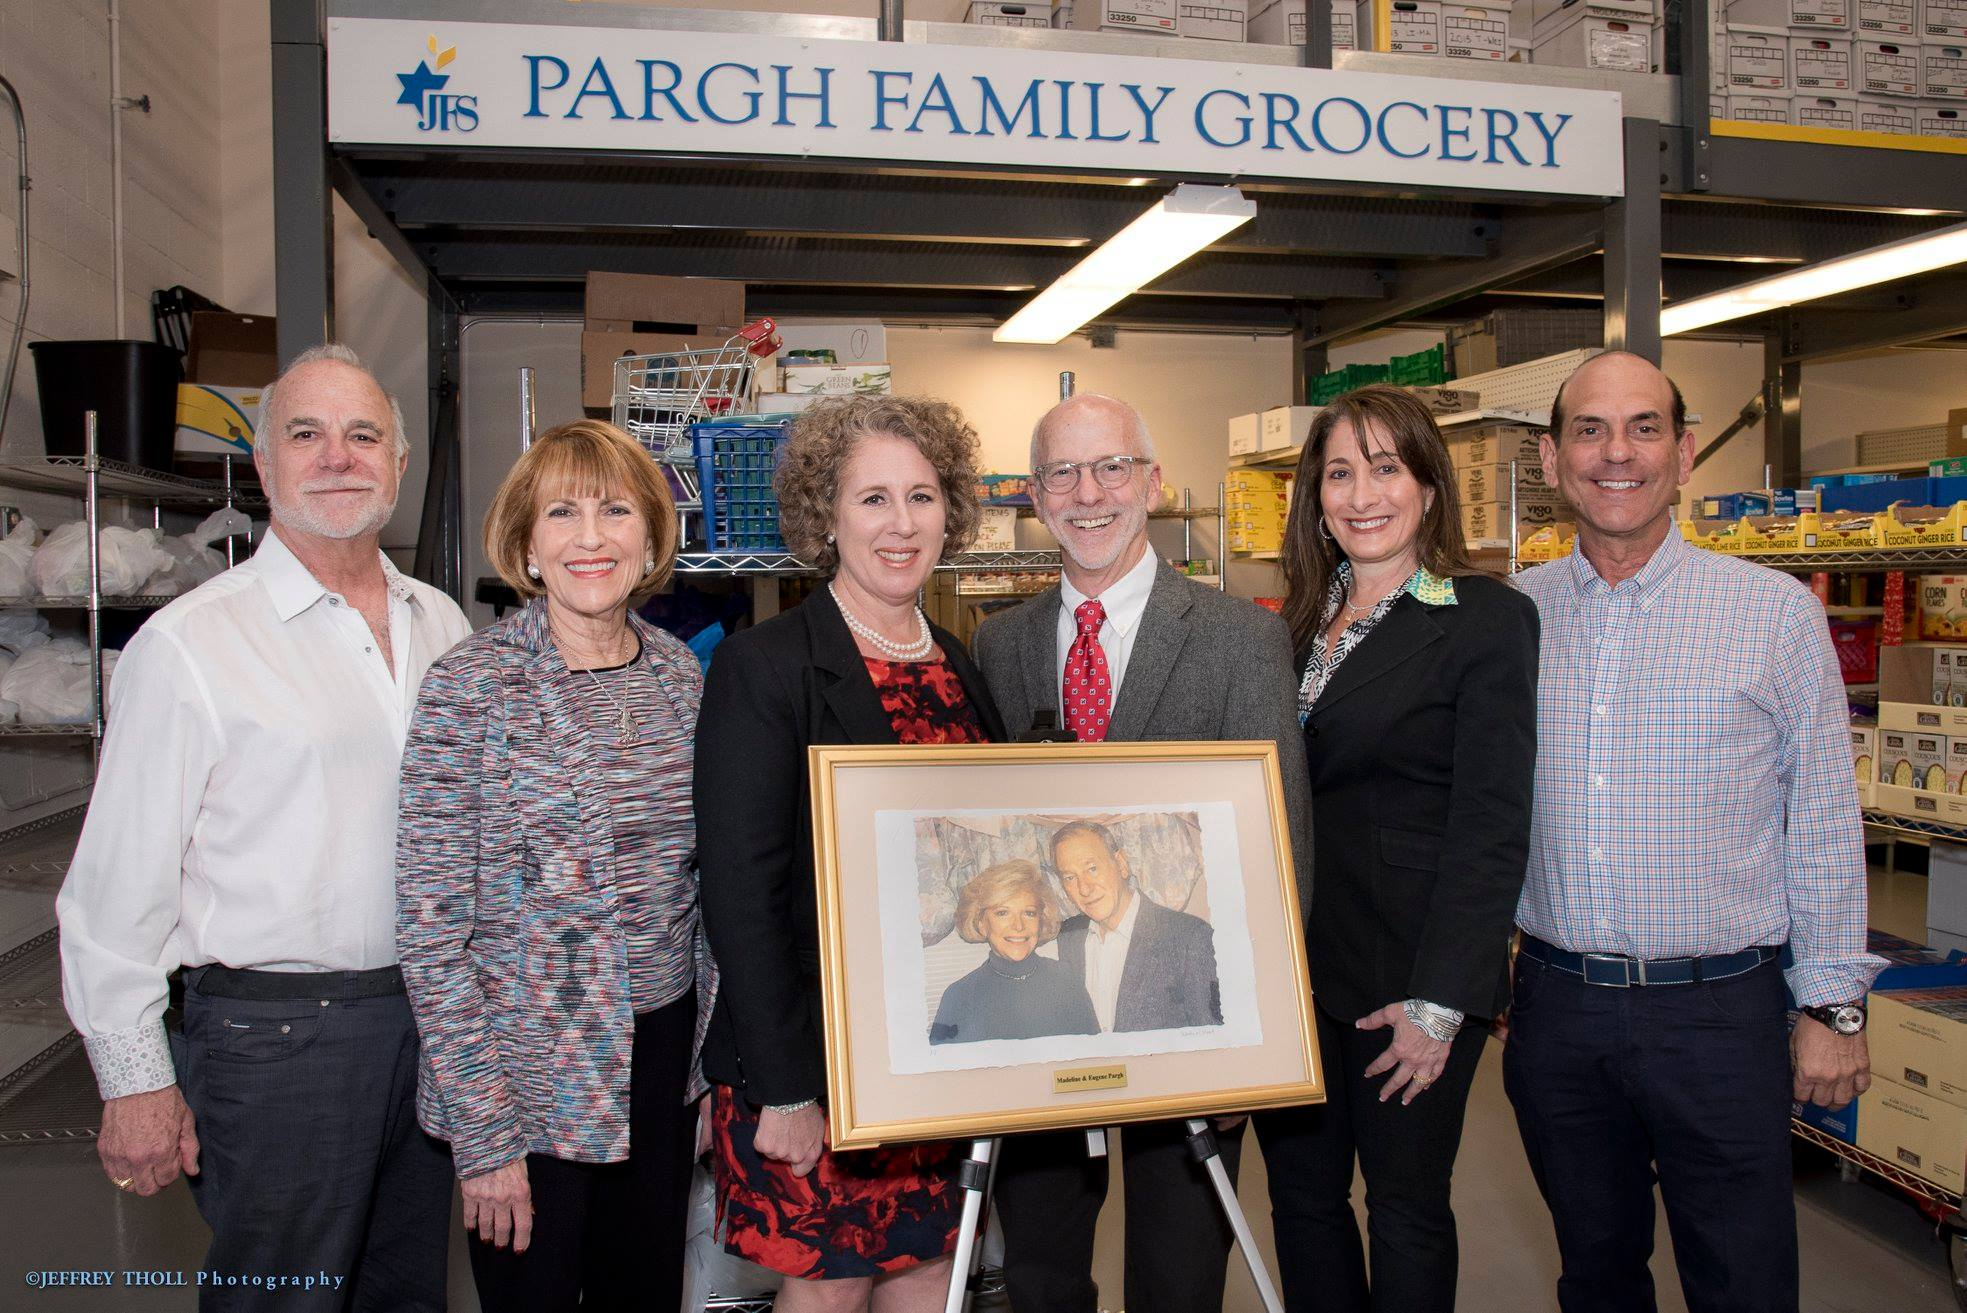 The Pargh Family Grocery